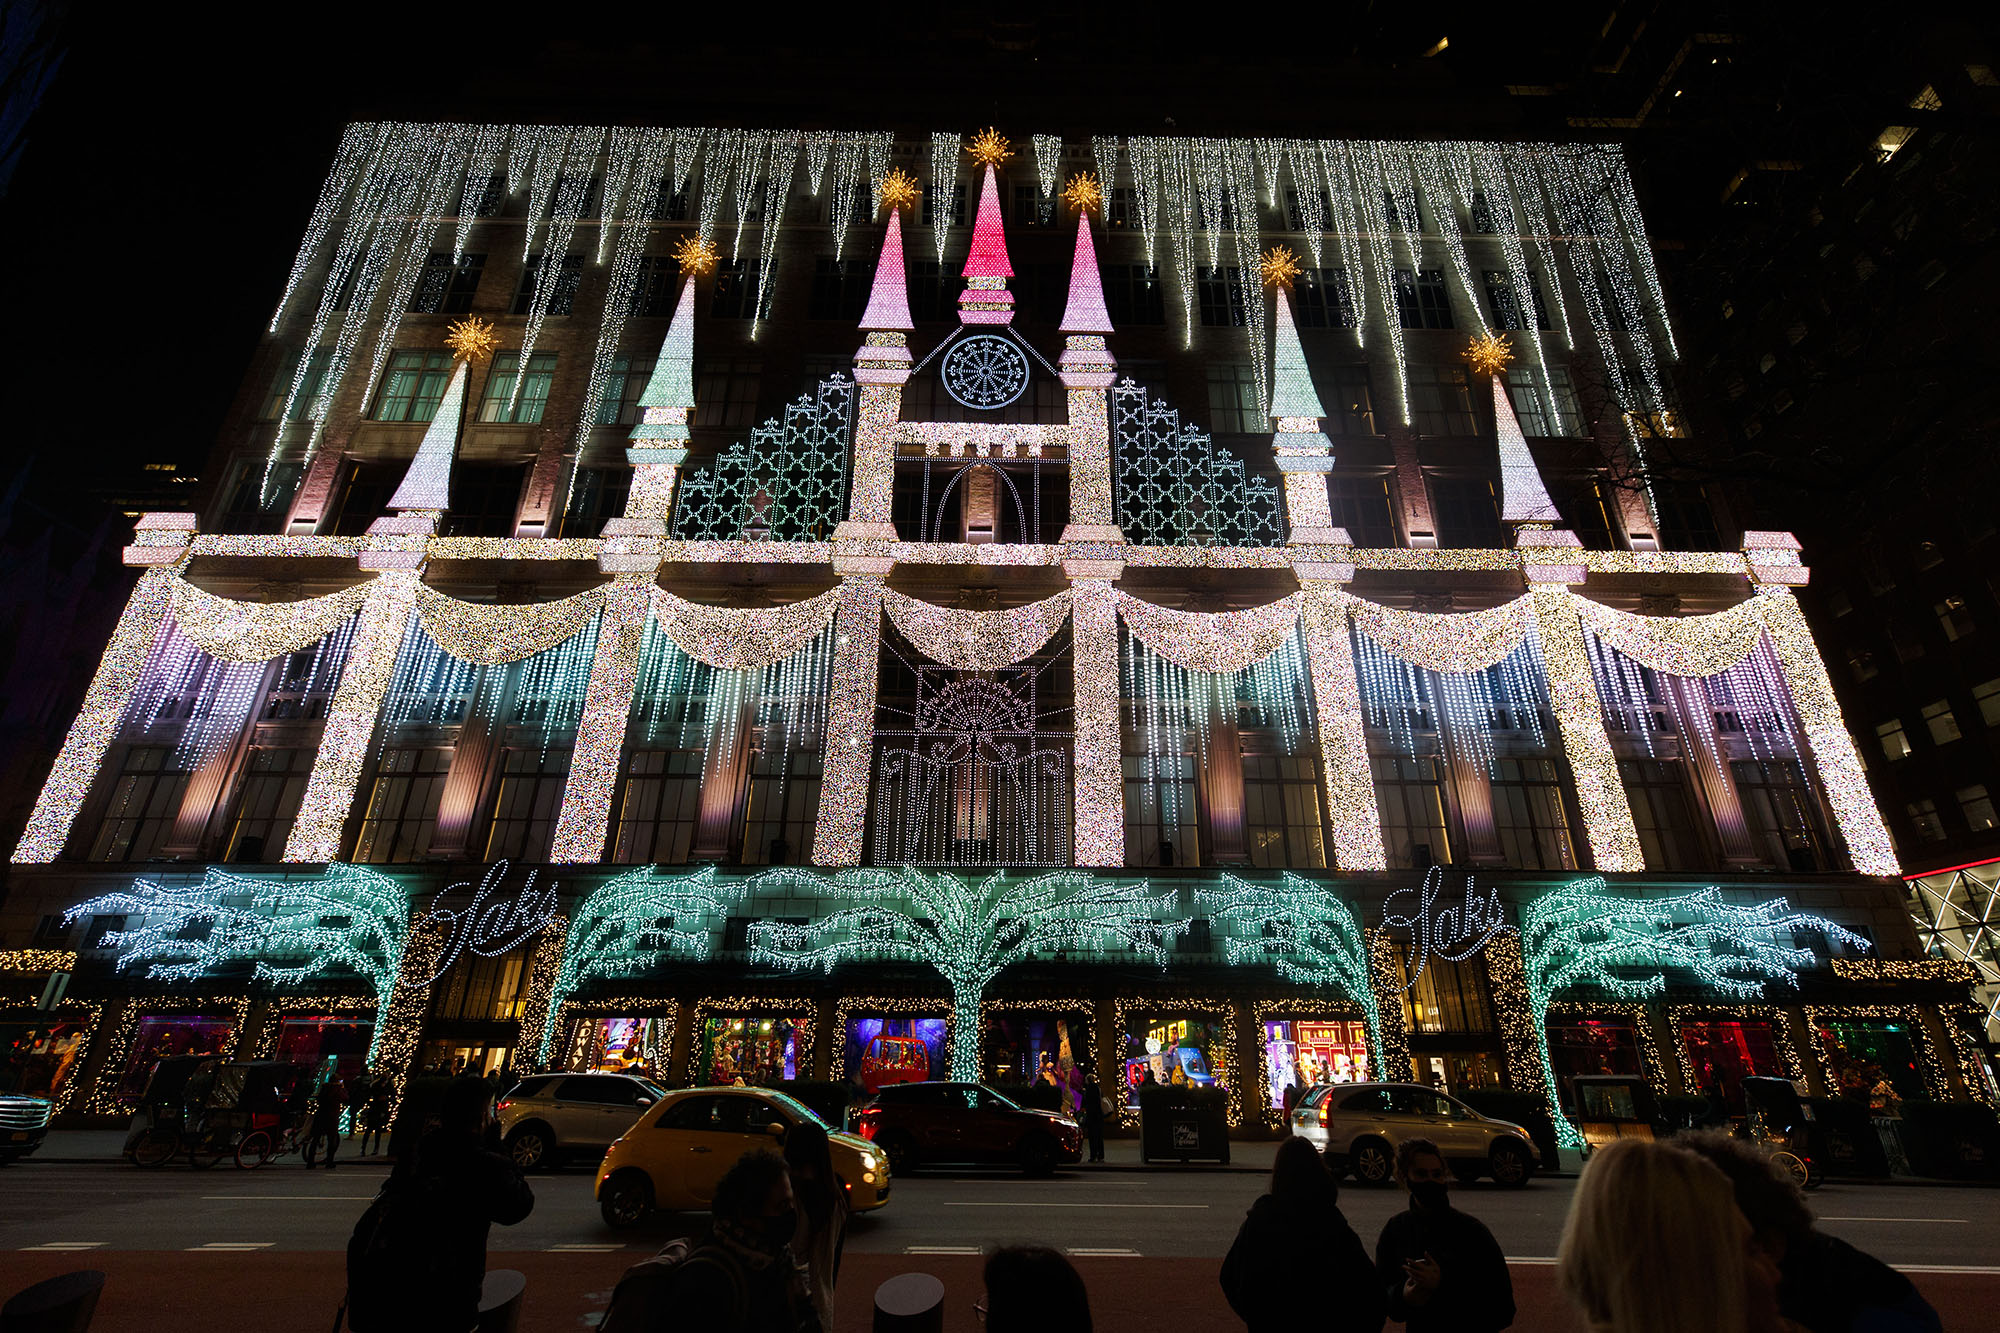 NYC's holiday windows are a glittering homage to hope